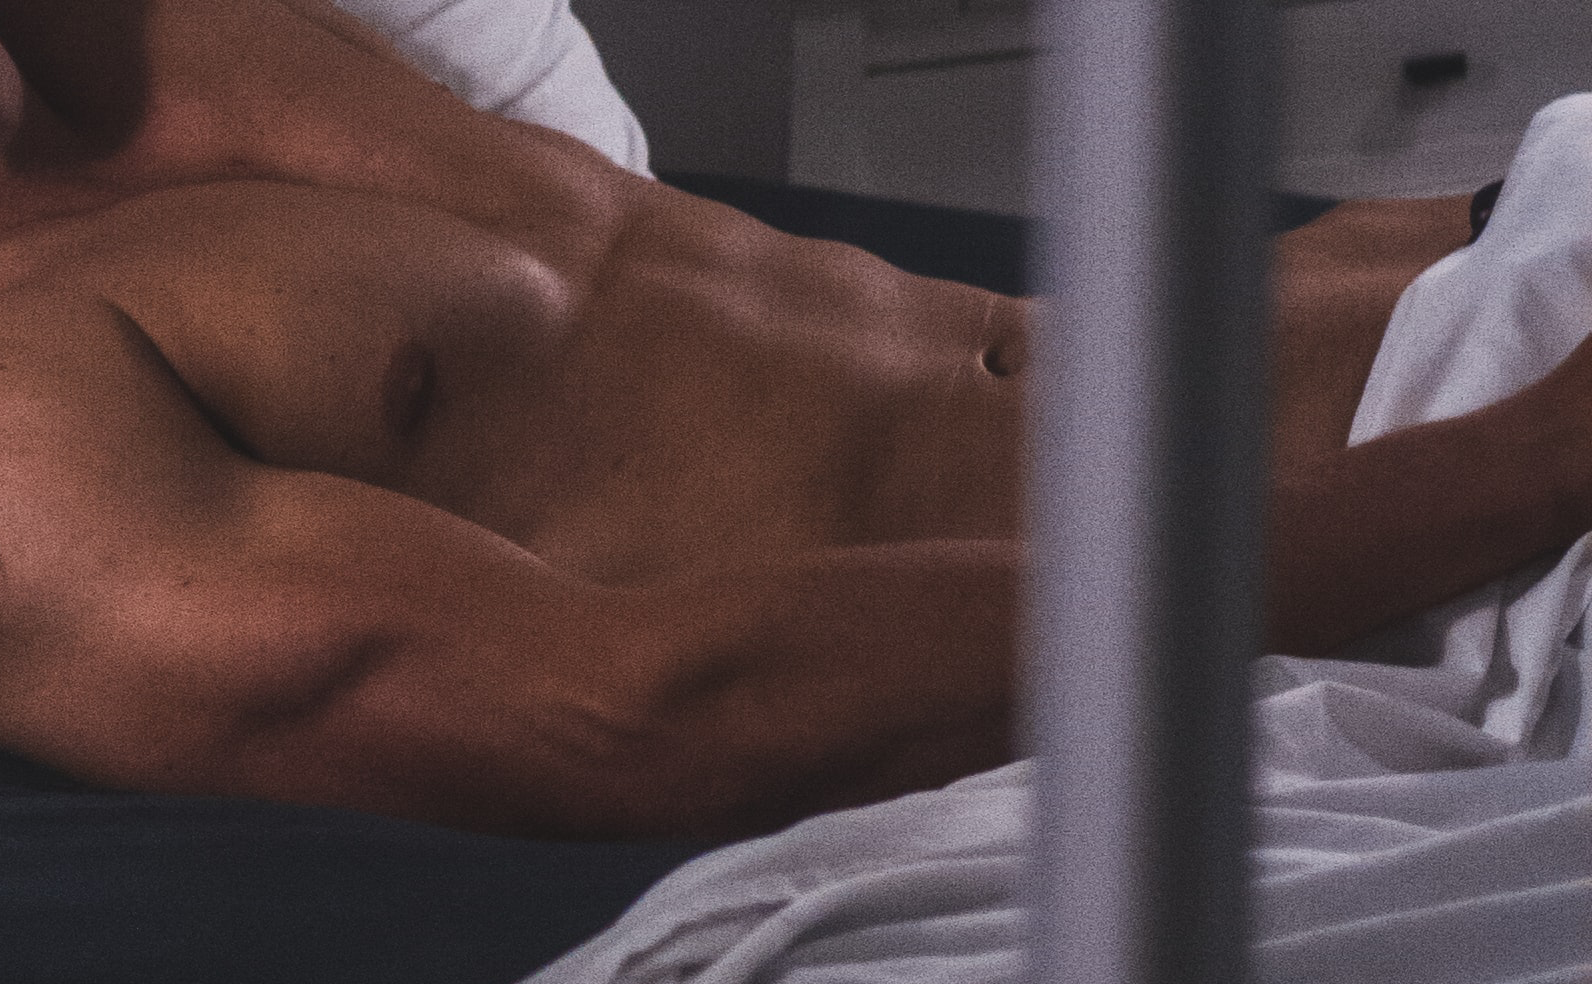 Topless muscular man reclining in bed with white bedsheets